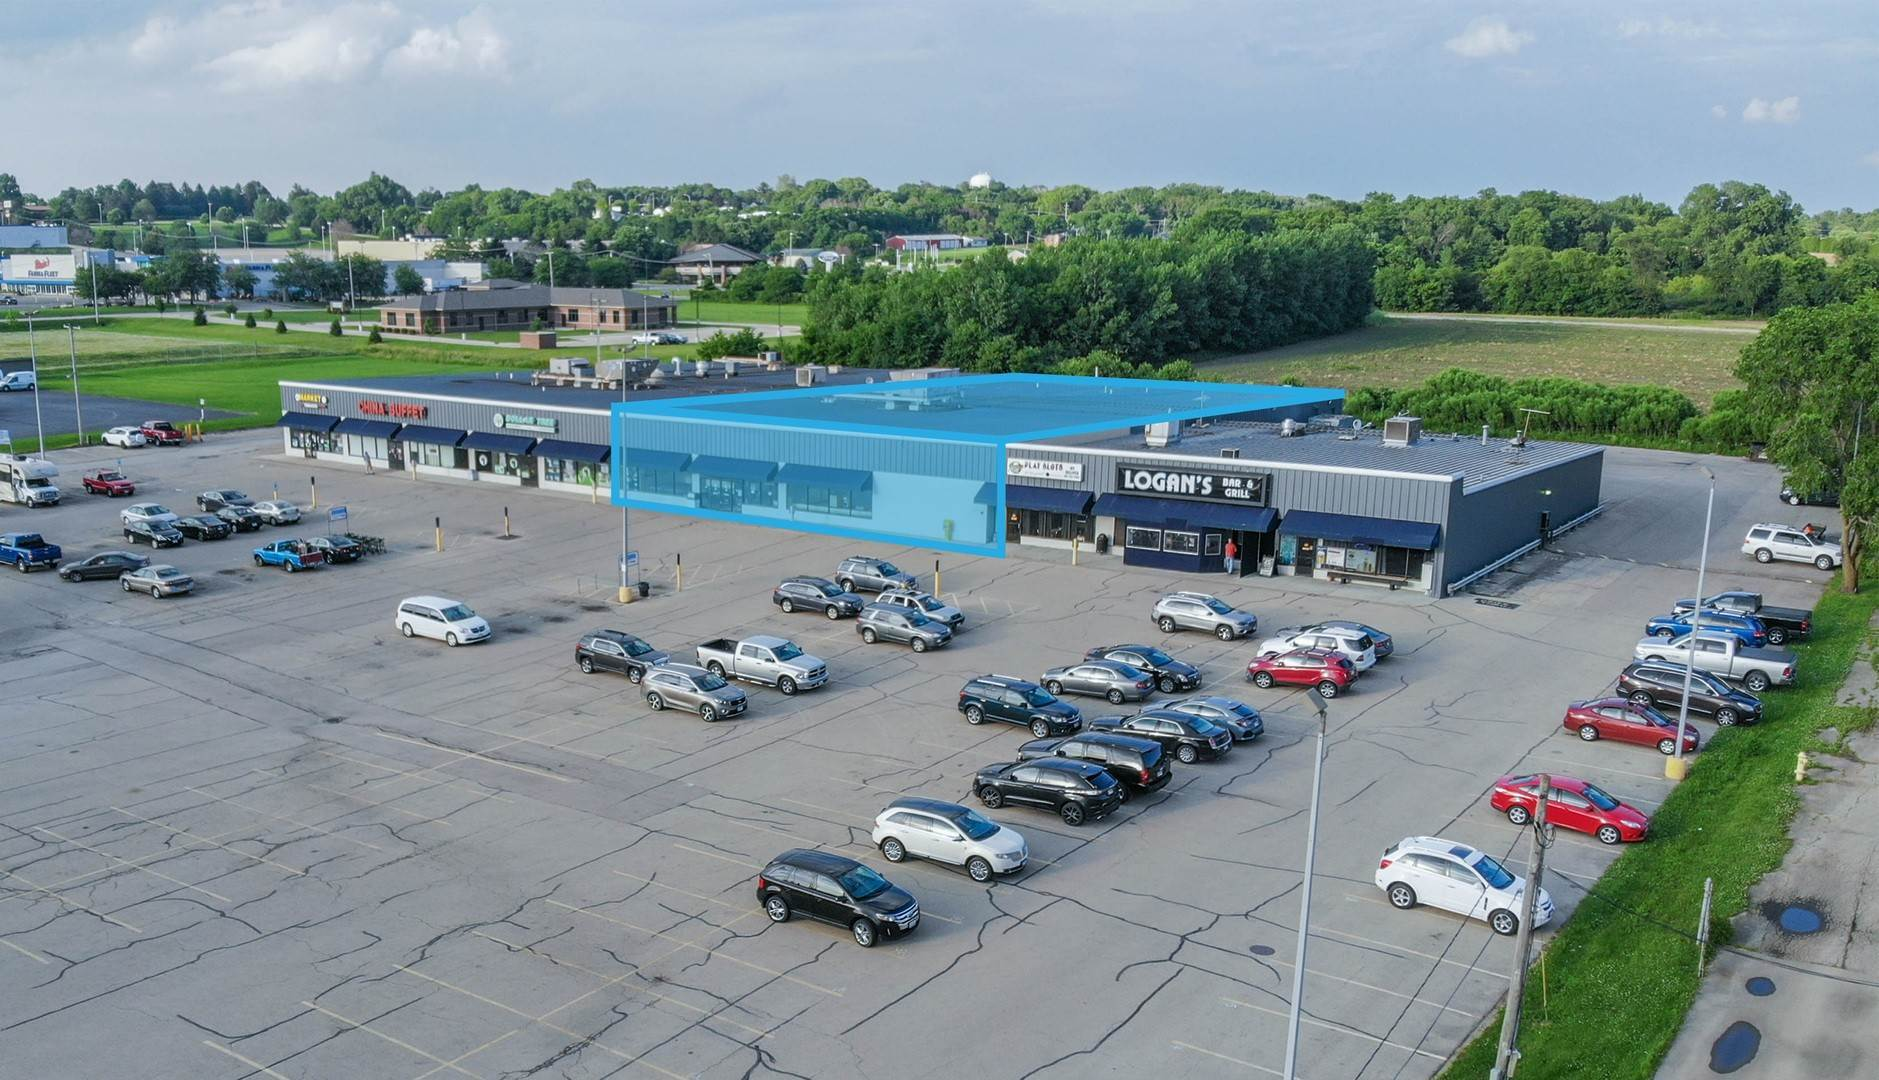 Commercial à 1801 S West Avenue Freeport, Illinois 61032 États-Unis